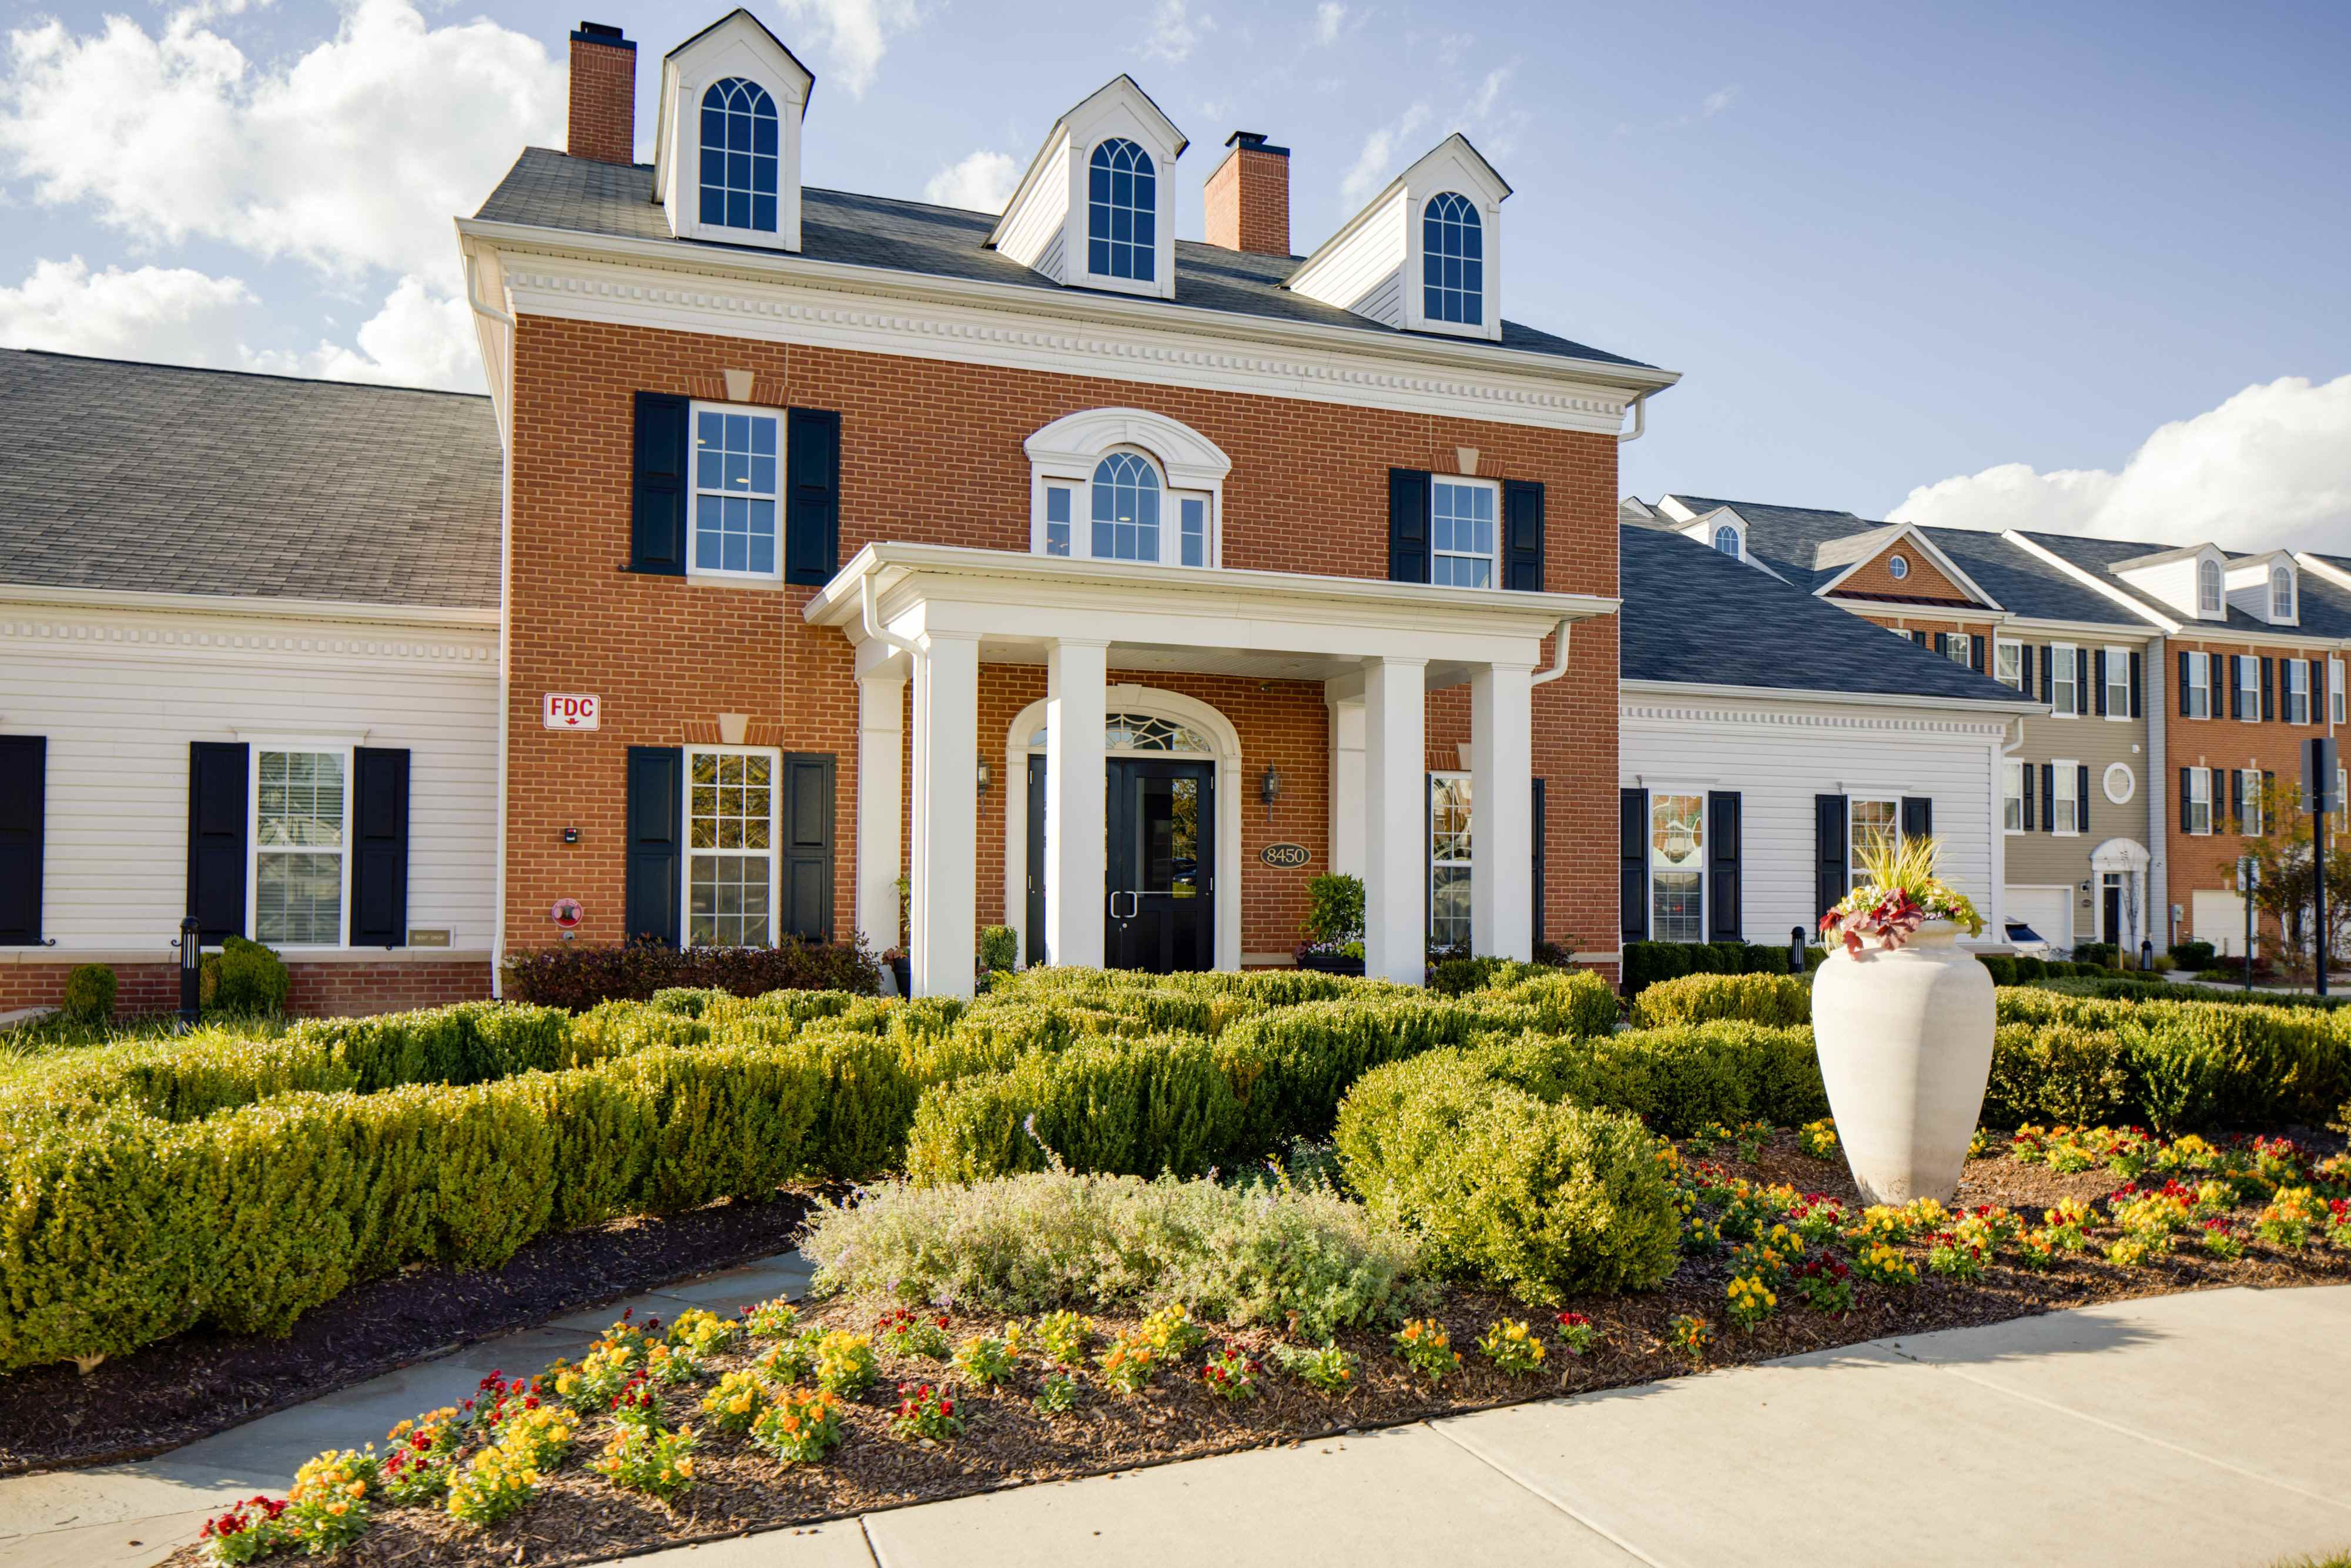 20 Best Apartments For Rent in Savage MD from $1380